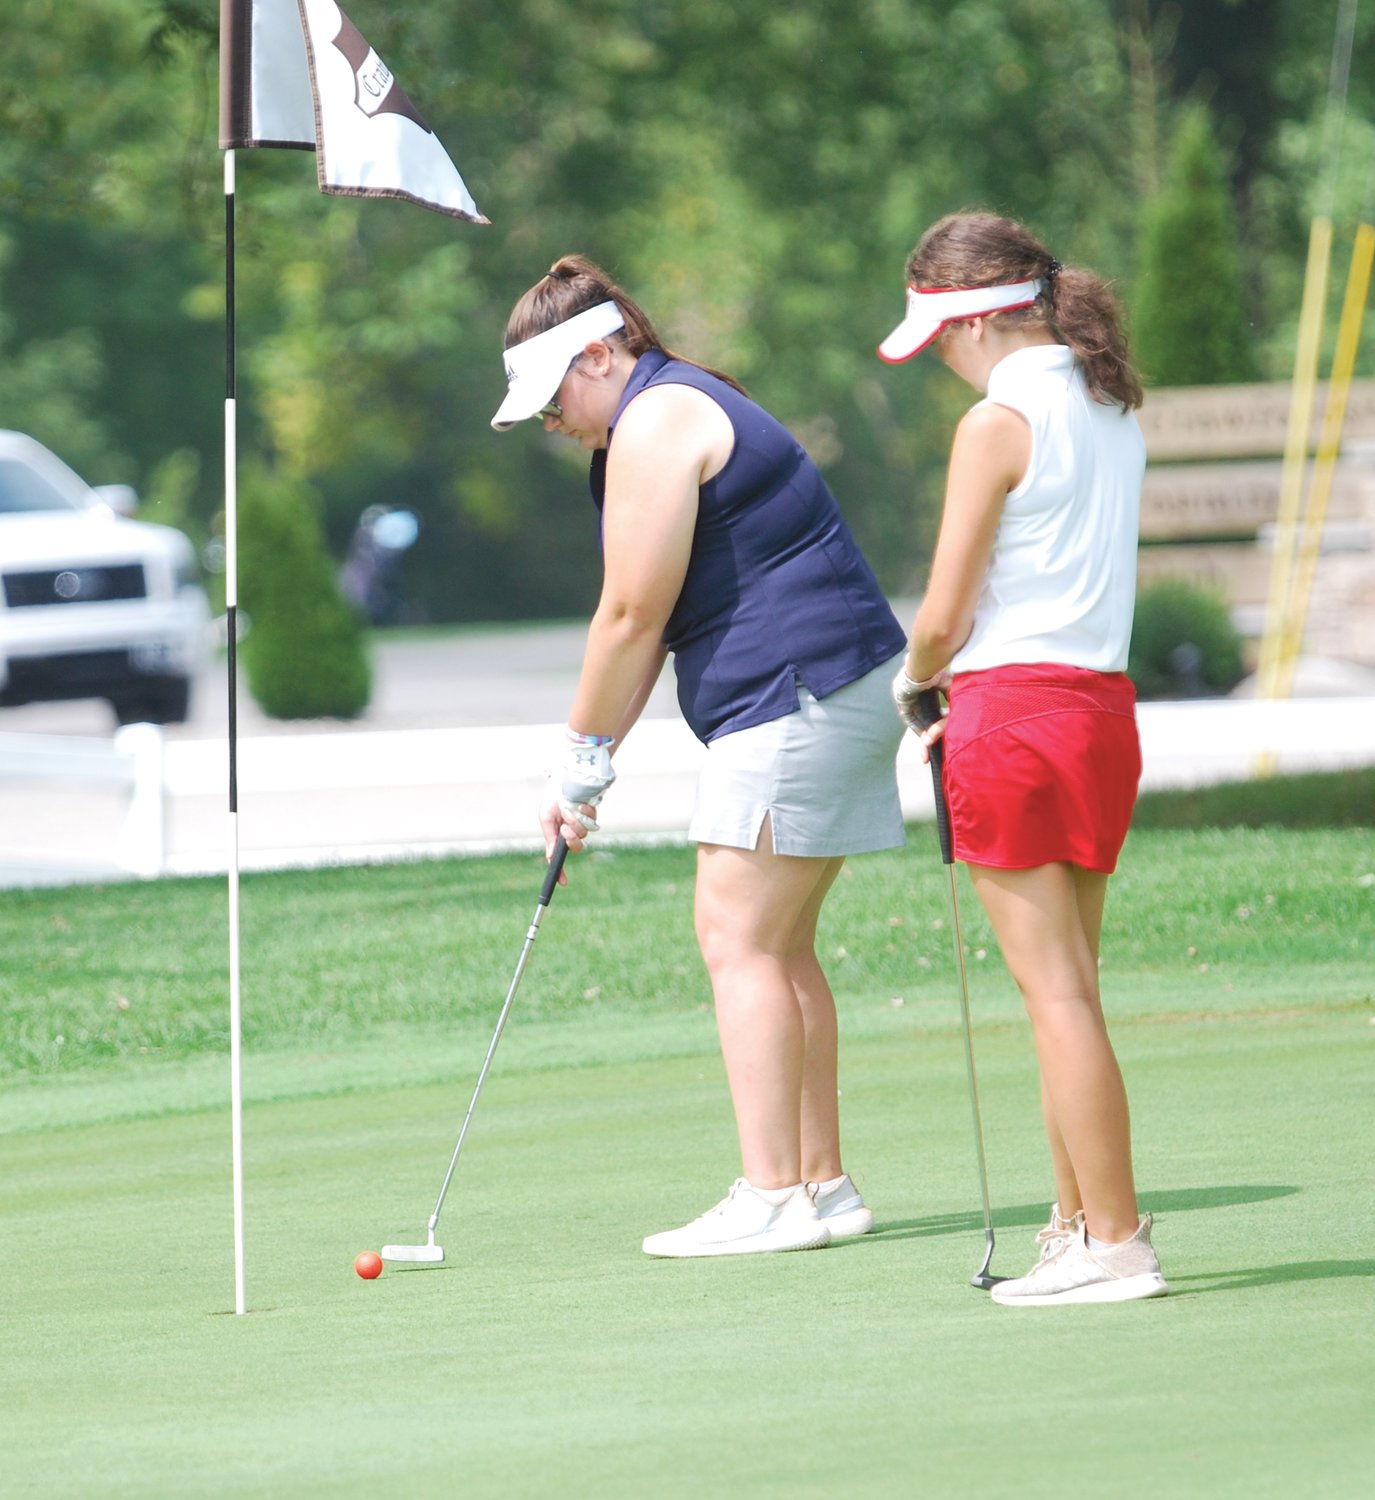 North Montgomery's Ella Stultz has a short putt on No. 18 at the Sagamore Conference meet. Stultz shot a 117 for the Chargers.